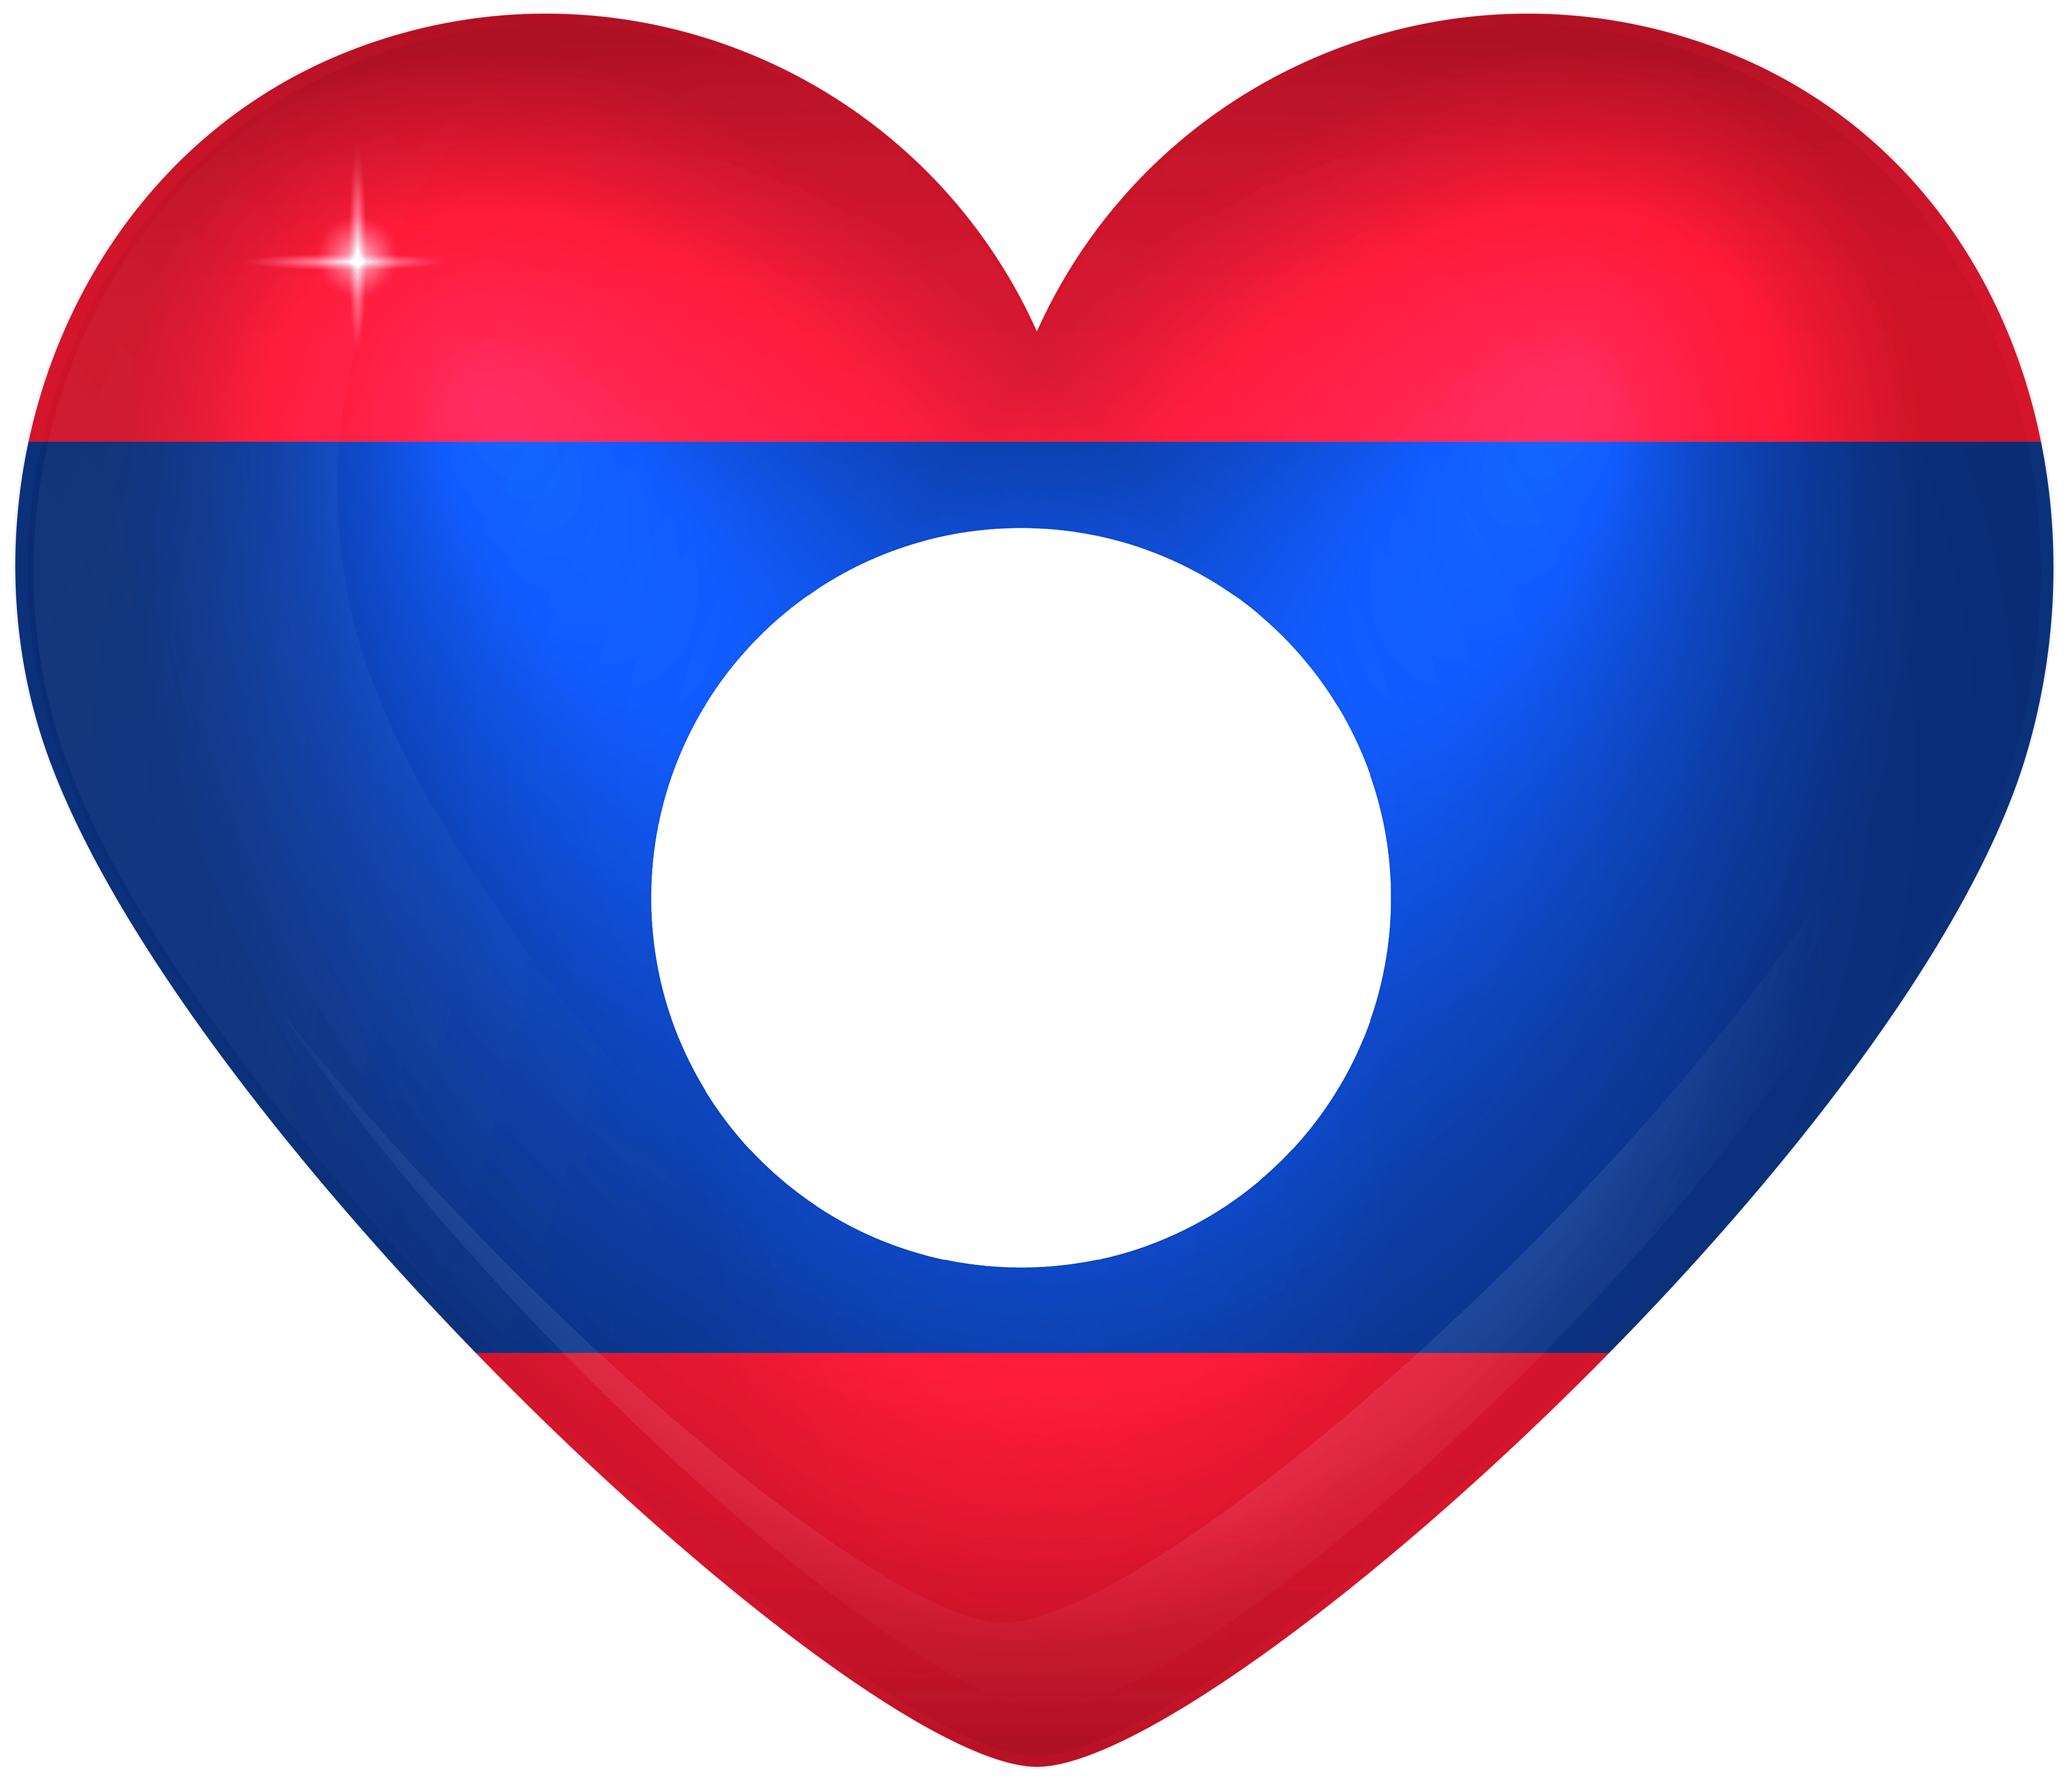 Laos Large Heart Flag | Gallery Yopriceville - High-Quality Images ...